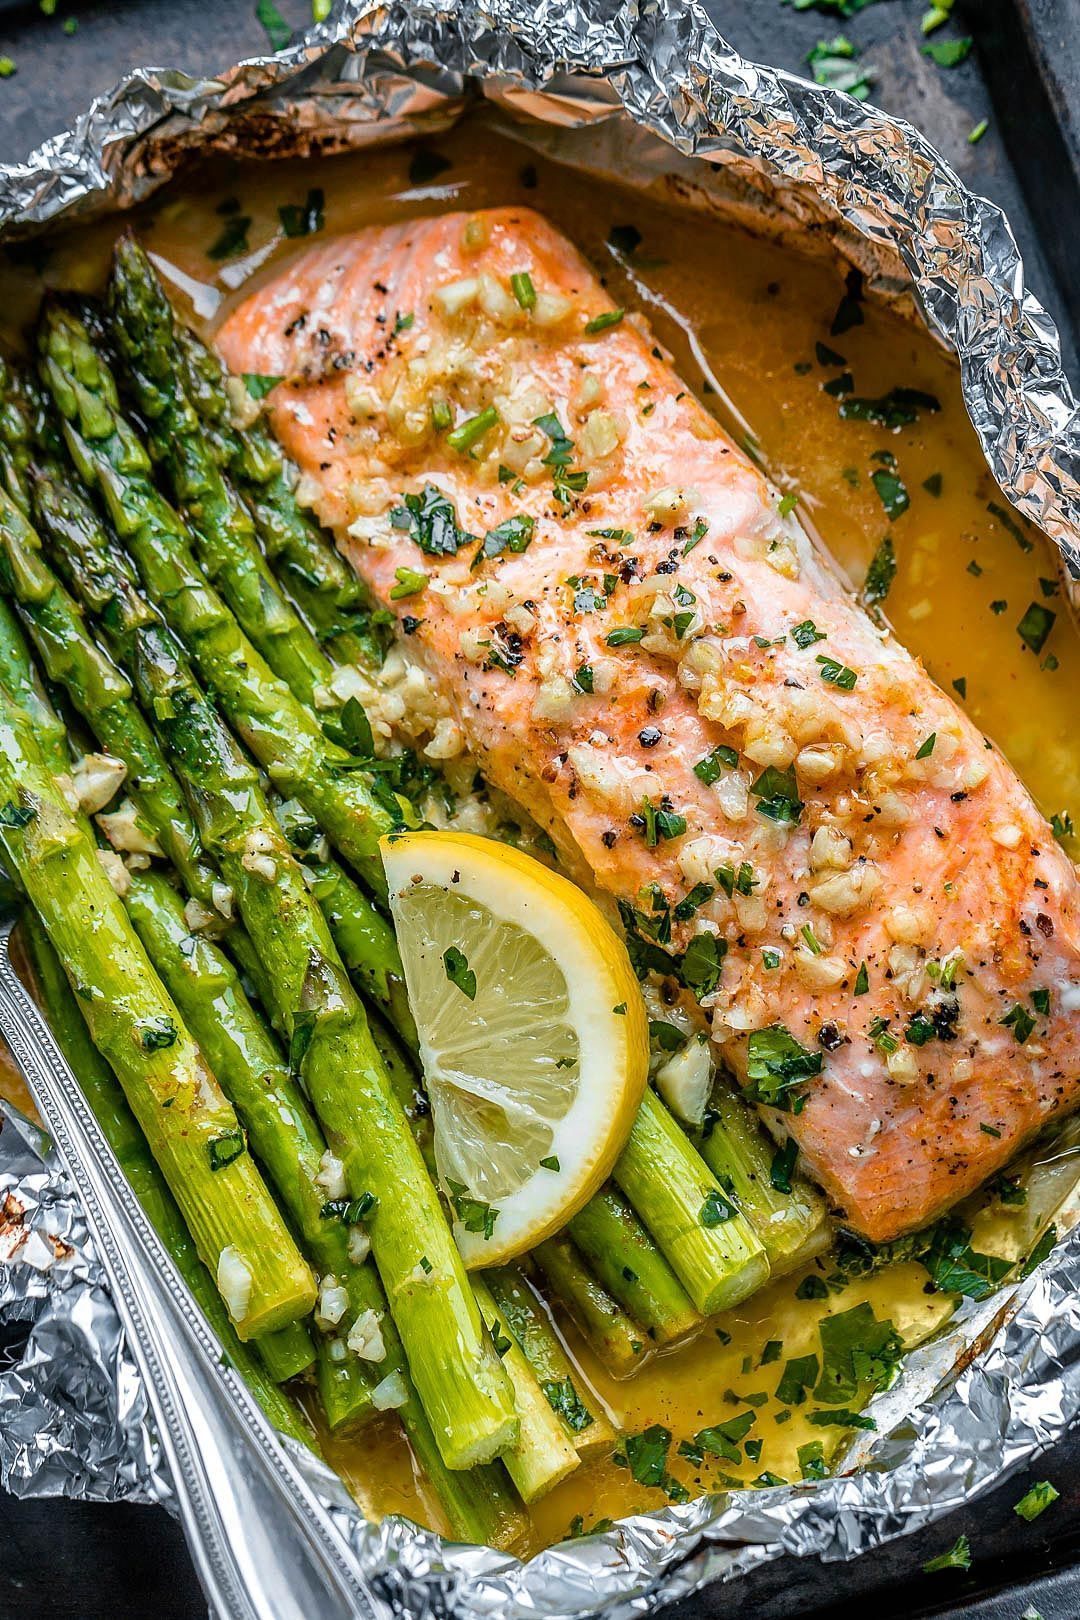 Salmon and Asparagus Foil Packs with Garlic Lemon Butter Sauce Salmon and Asparagus Foil Packs with